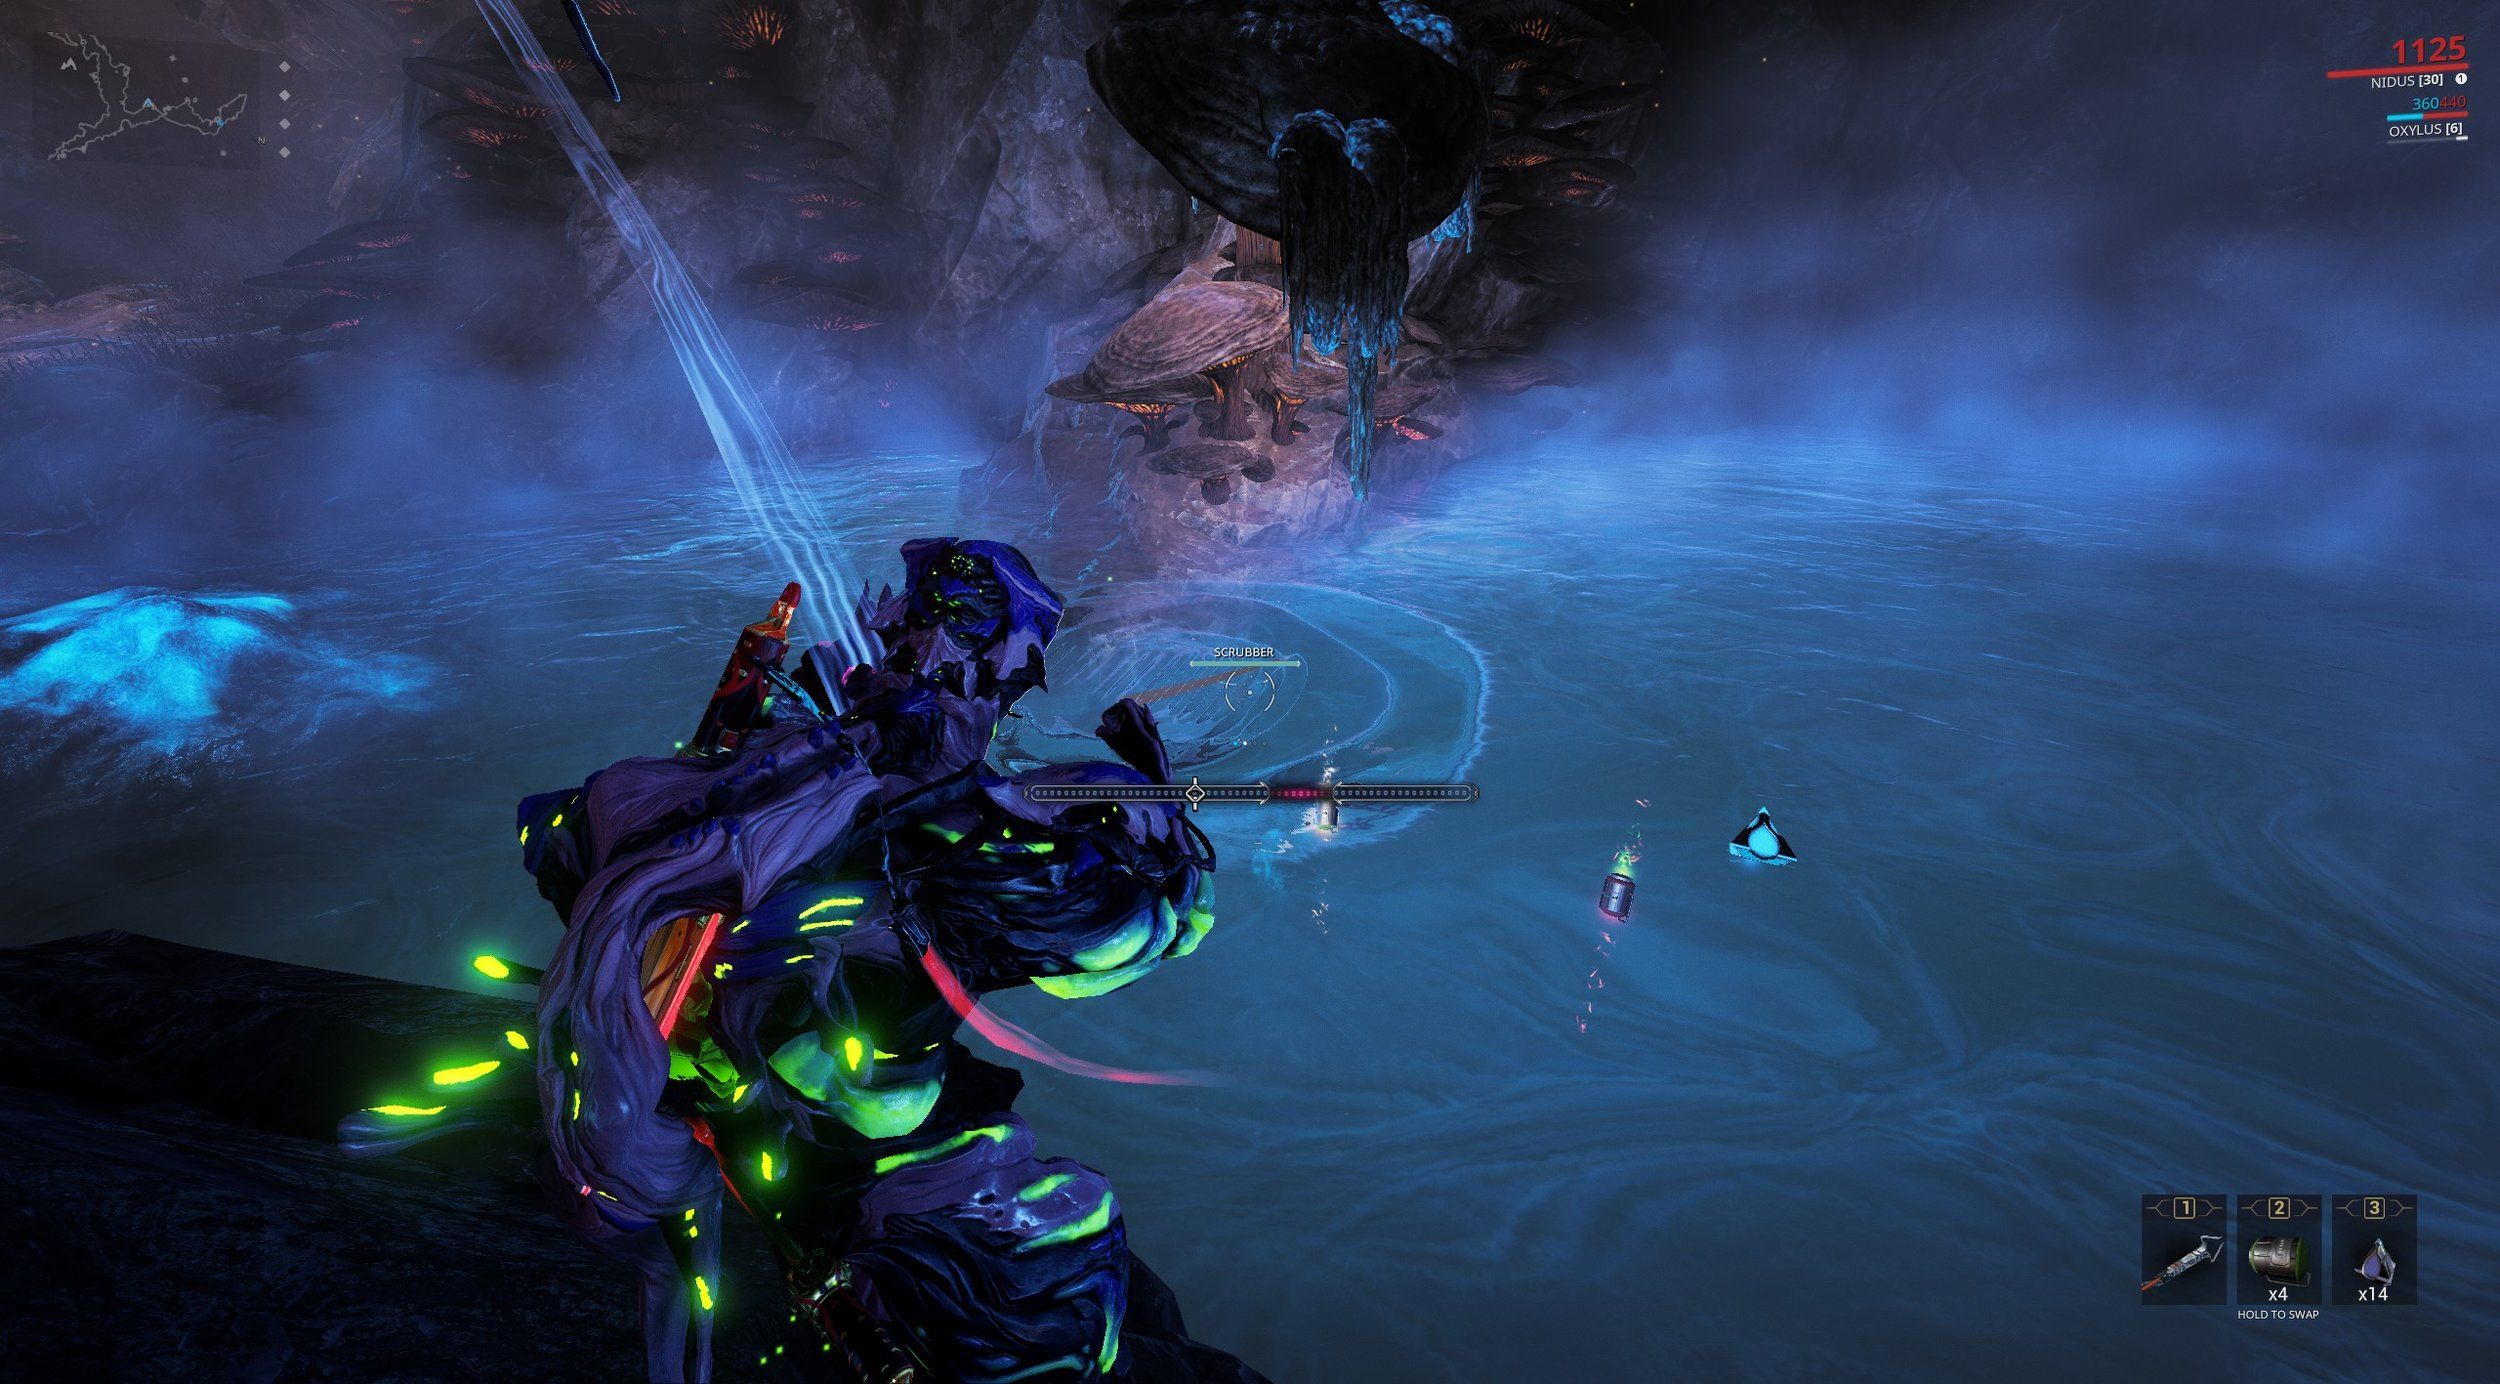 Fishing in Fortuna. Why not.